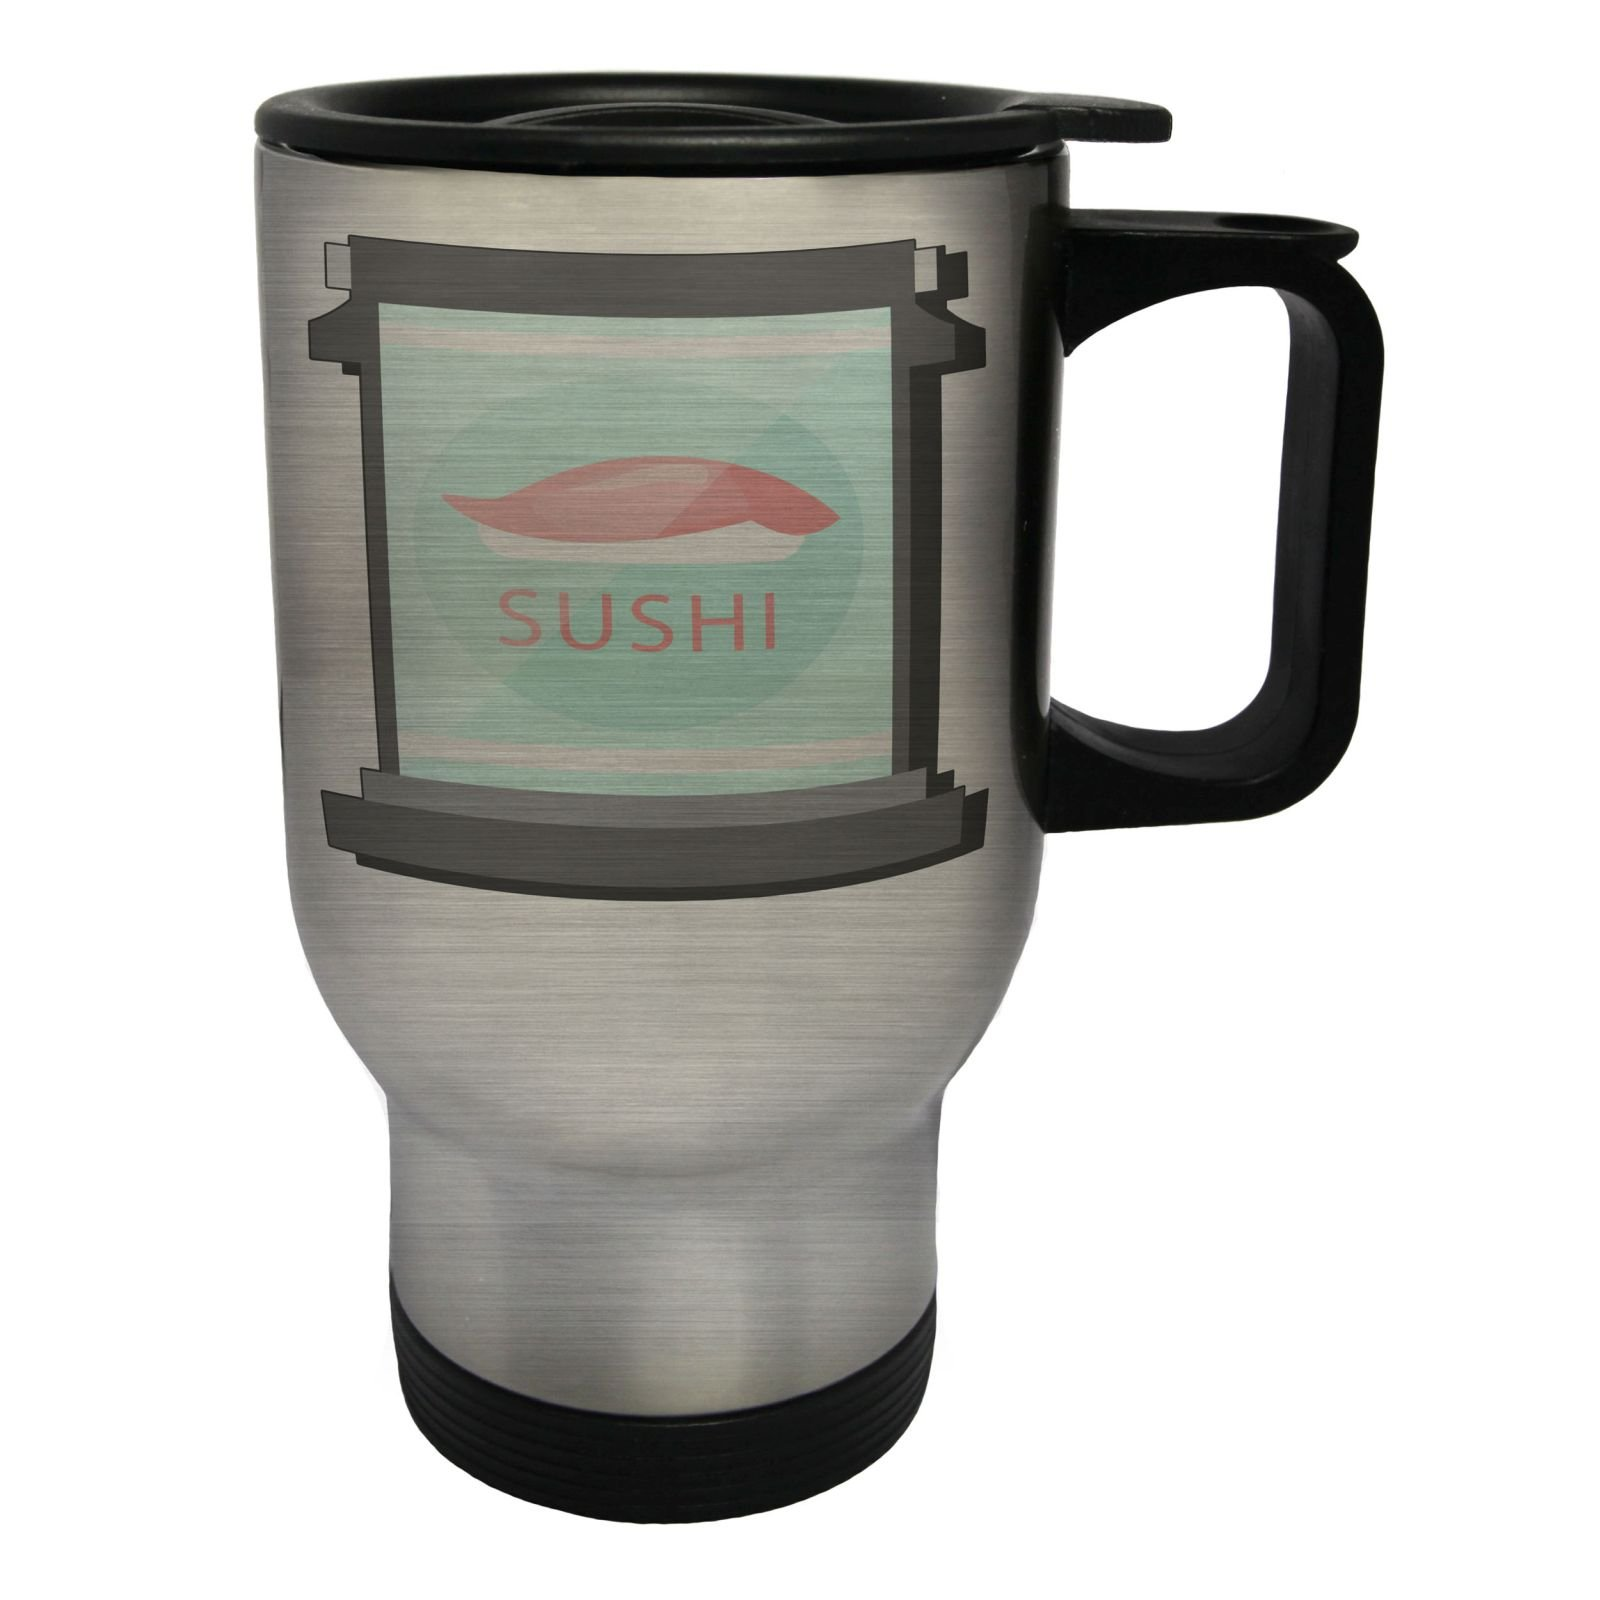 Sushi Cafe Restaurant Stainless Steel Thermo Travel Mug 14oz p230ts